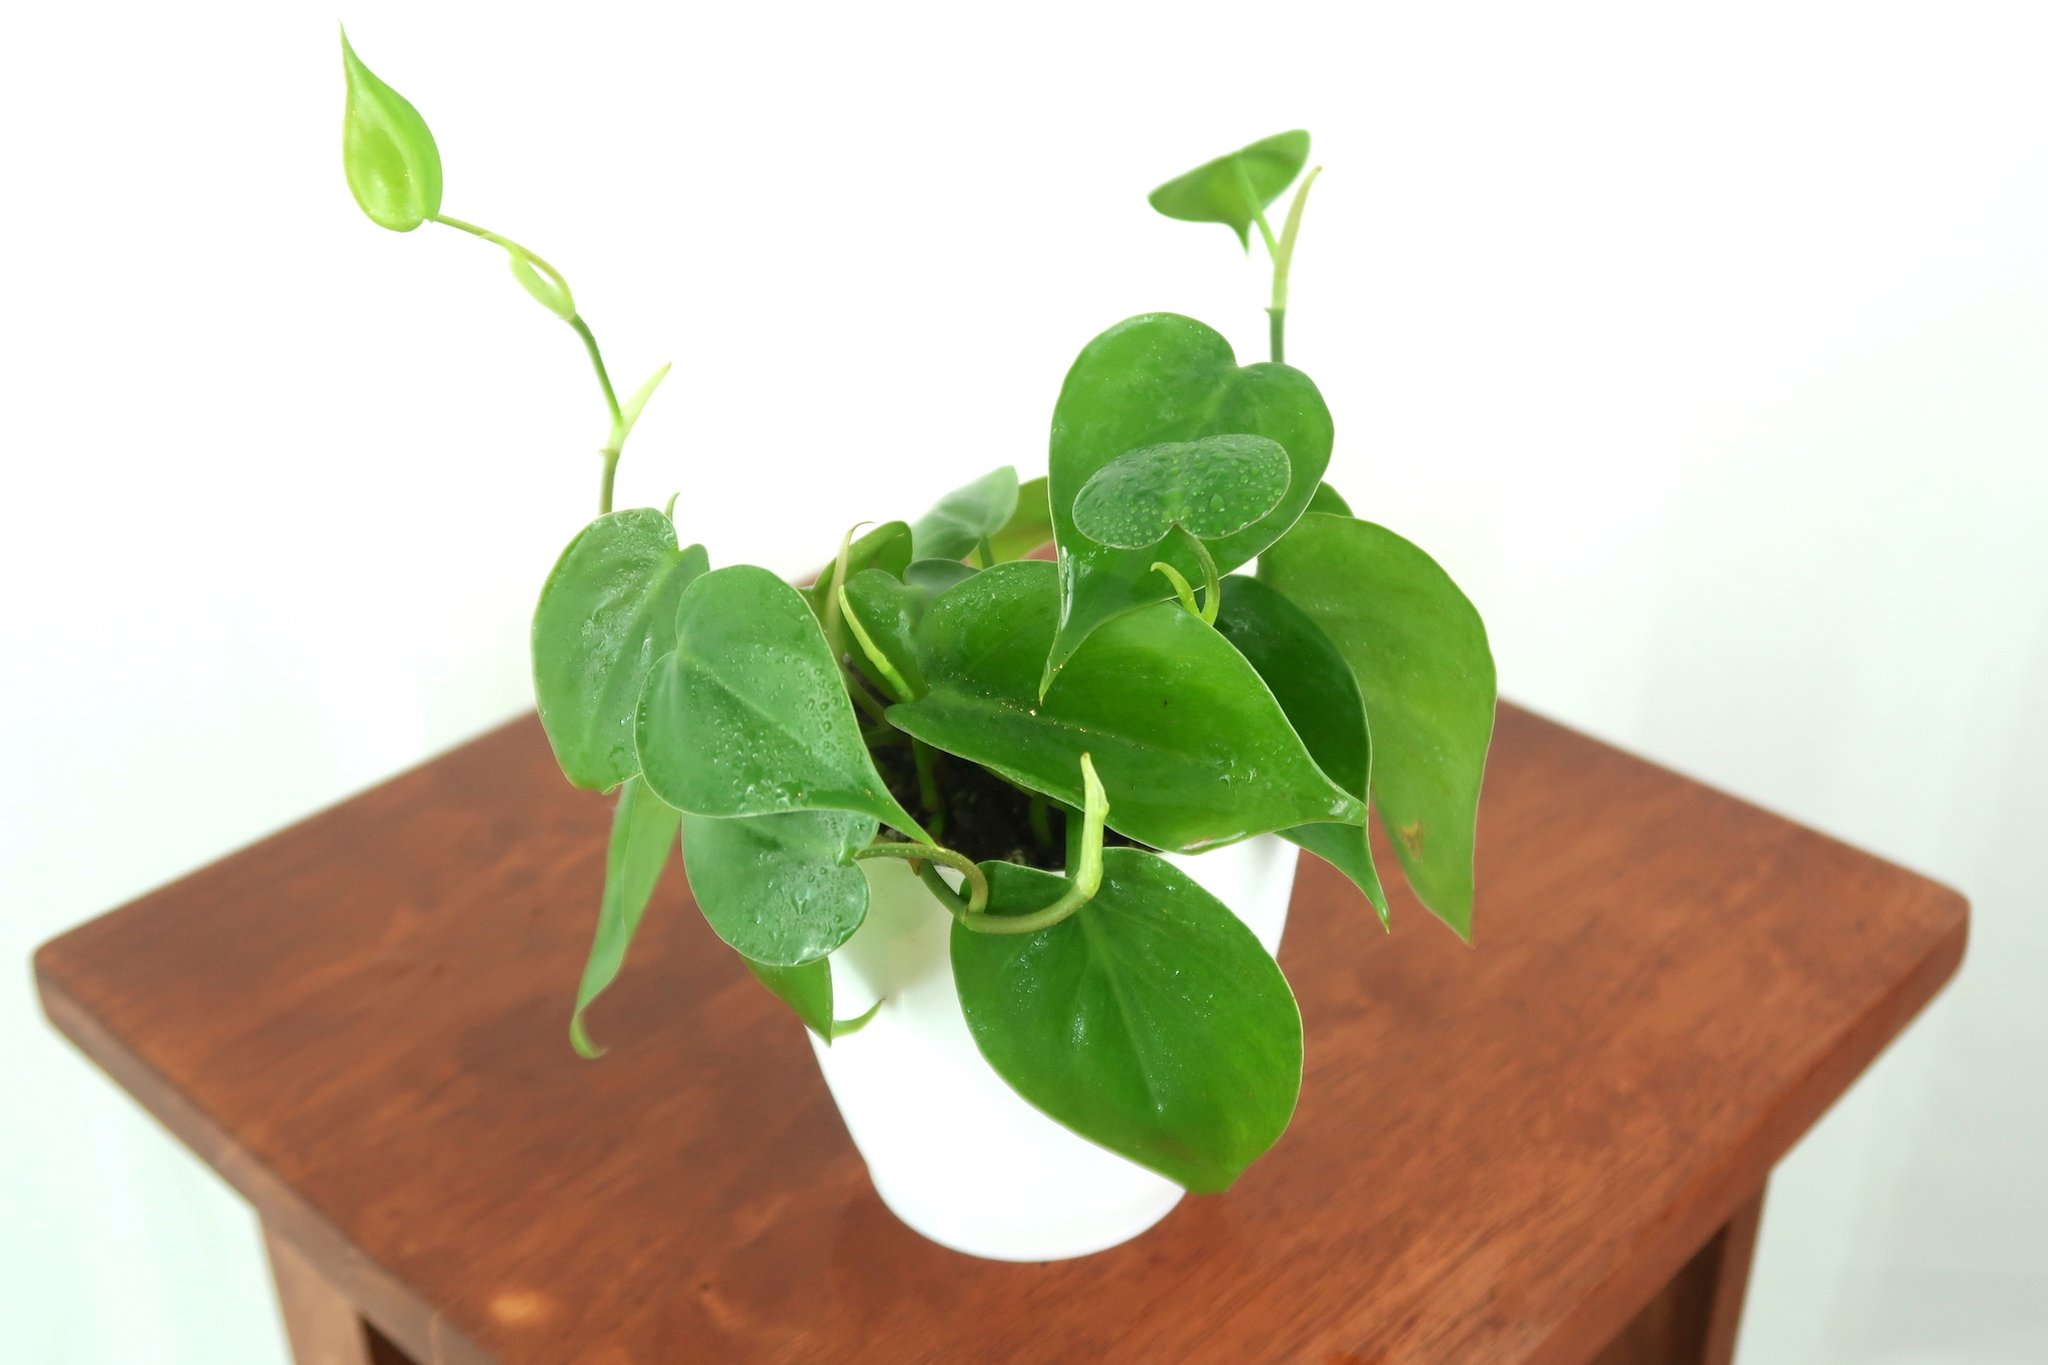 Heartleaf Philodendron to gift your close ones